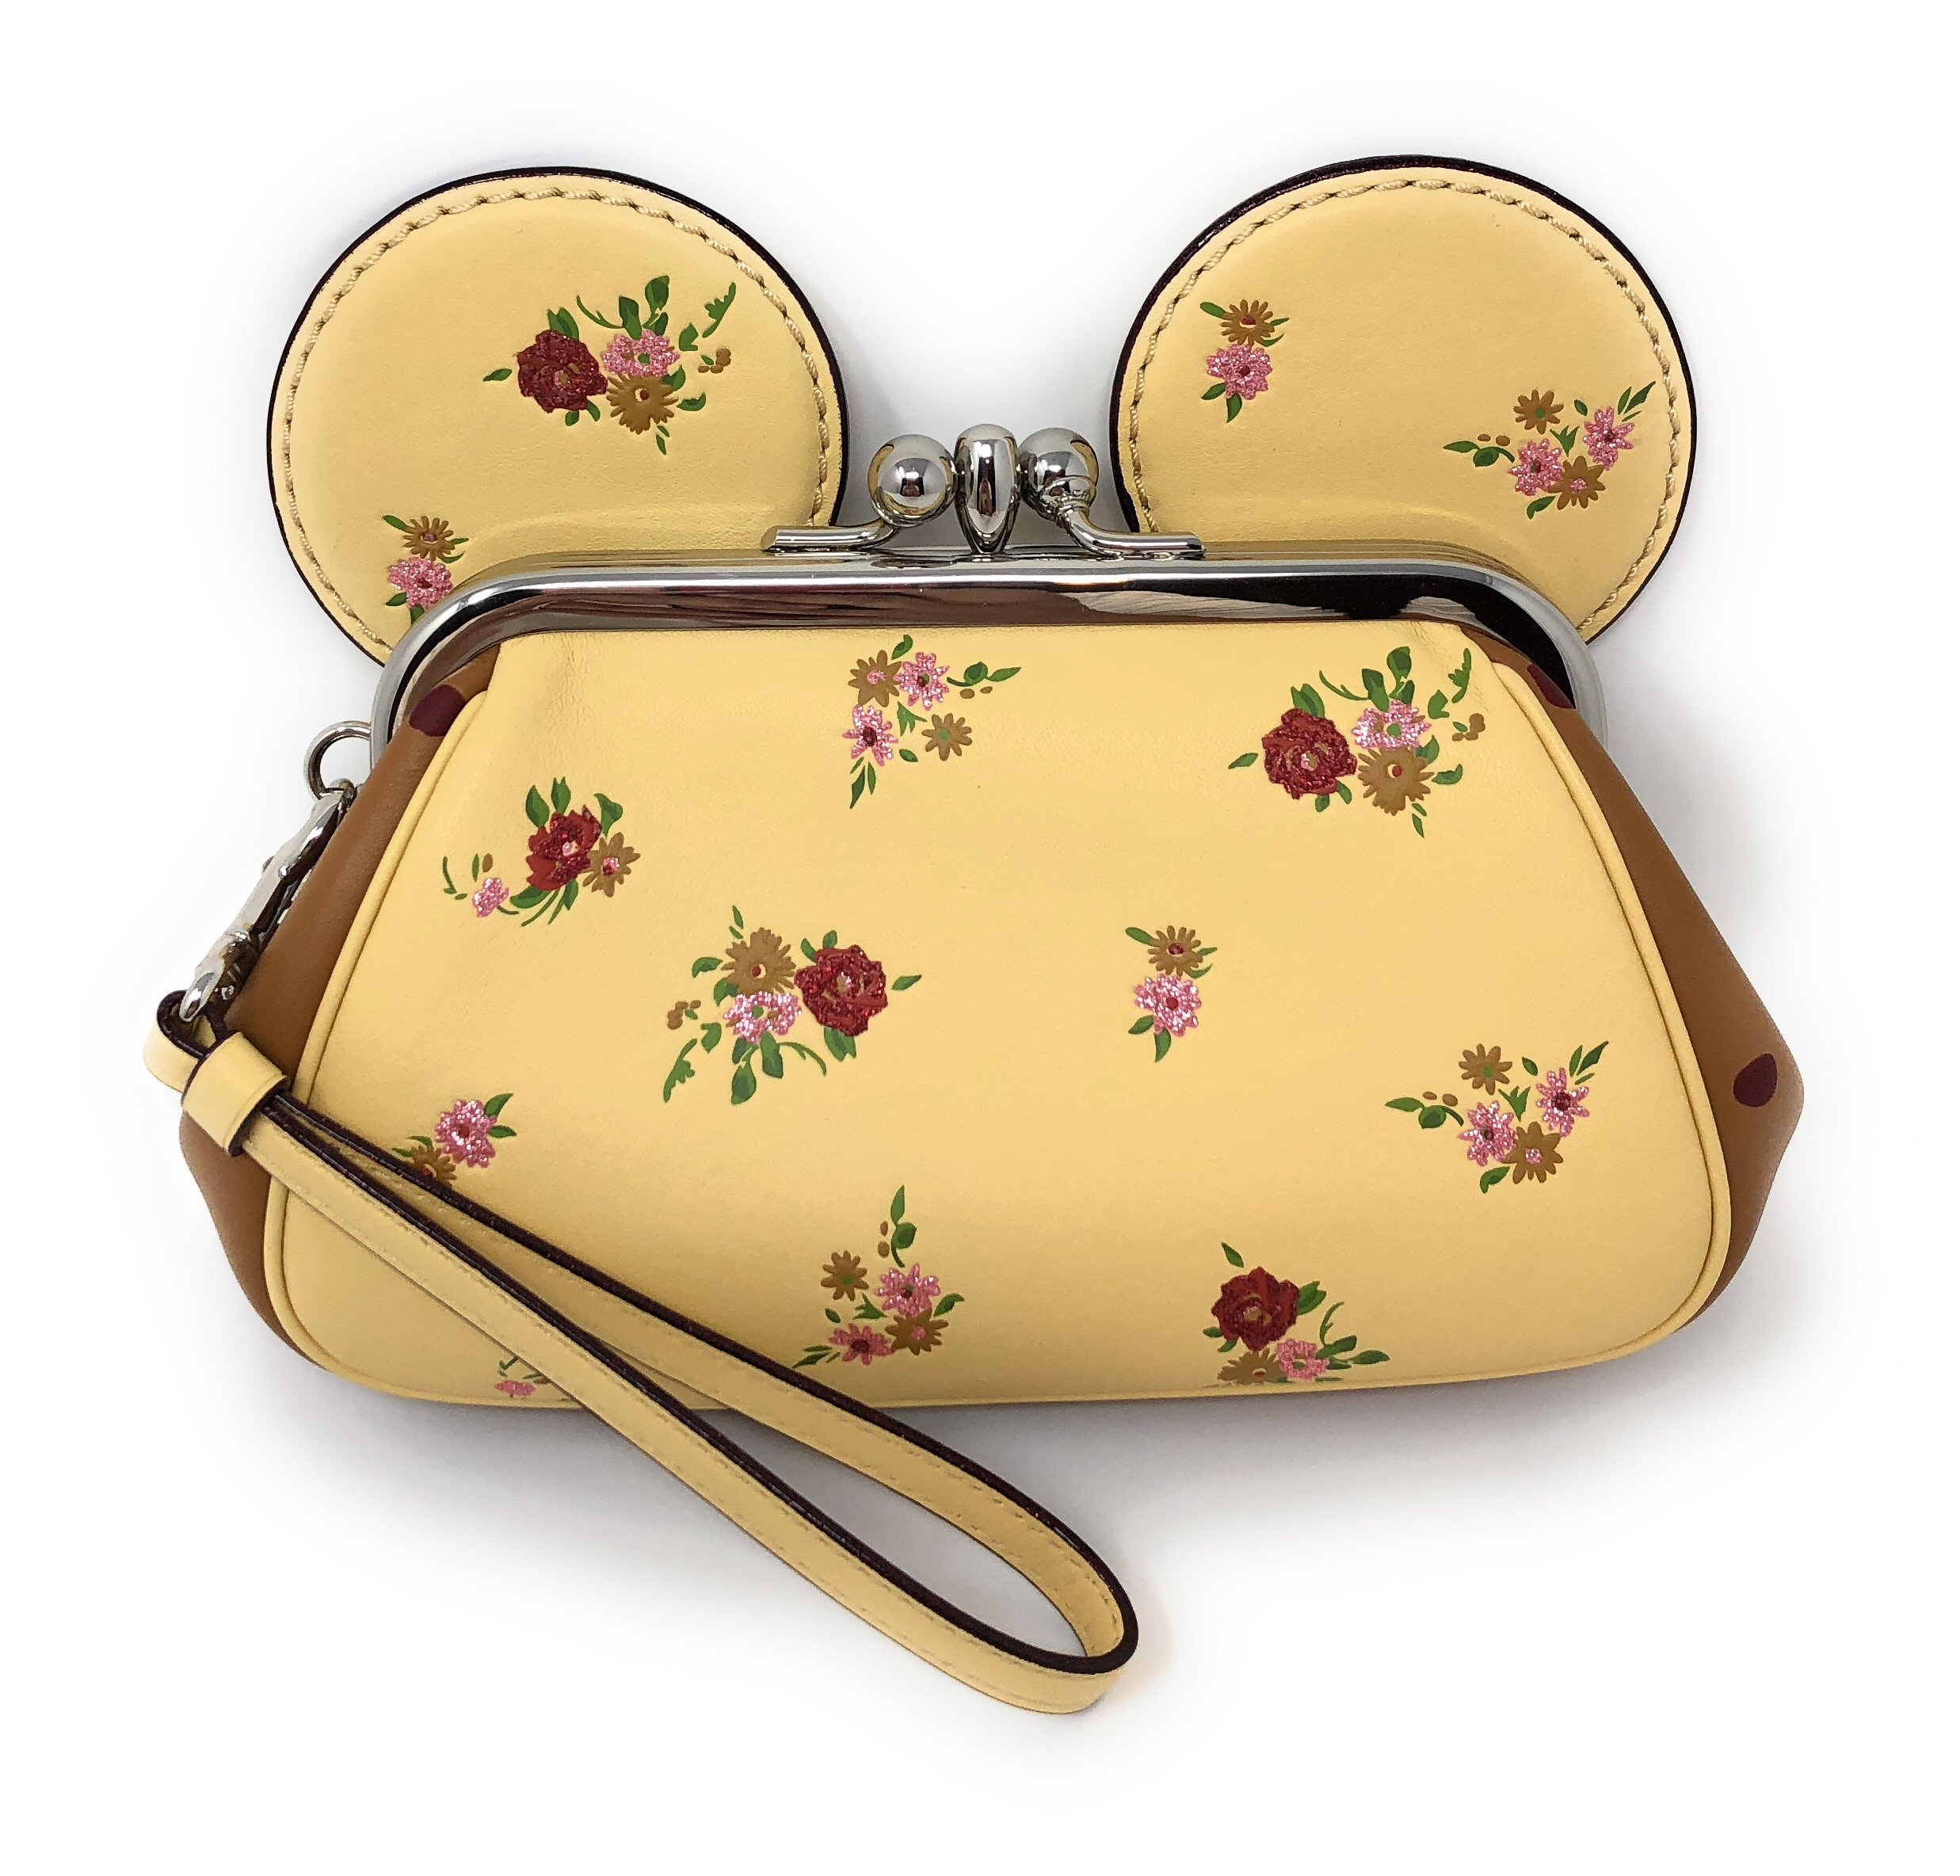 Coach X Disney Minnie Mouse Kisslock Floral Printed Wristlet Handbag Buy Online In Kuwait Shoes Products In Kuwait See Prices Reviews And Free Delivery Over Kd 20 000 Desertcart